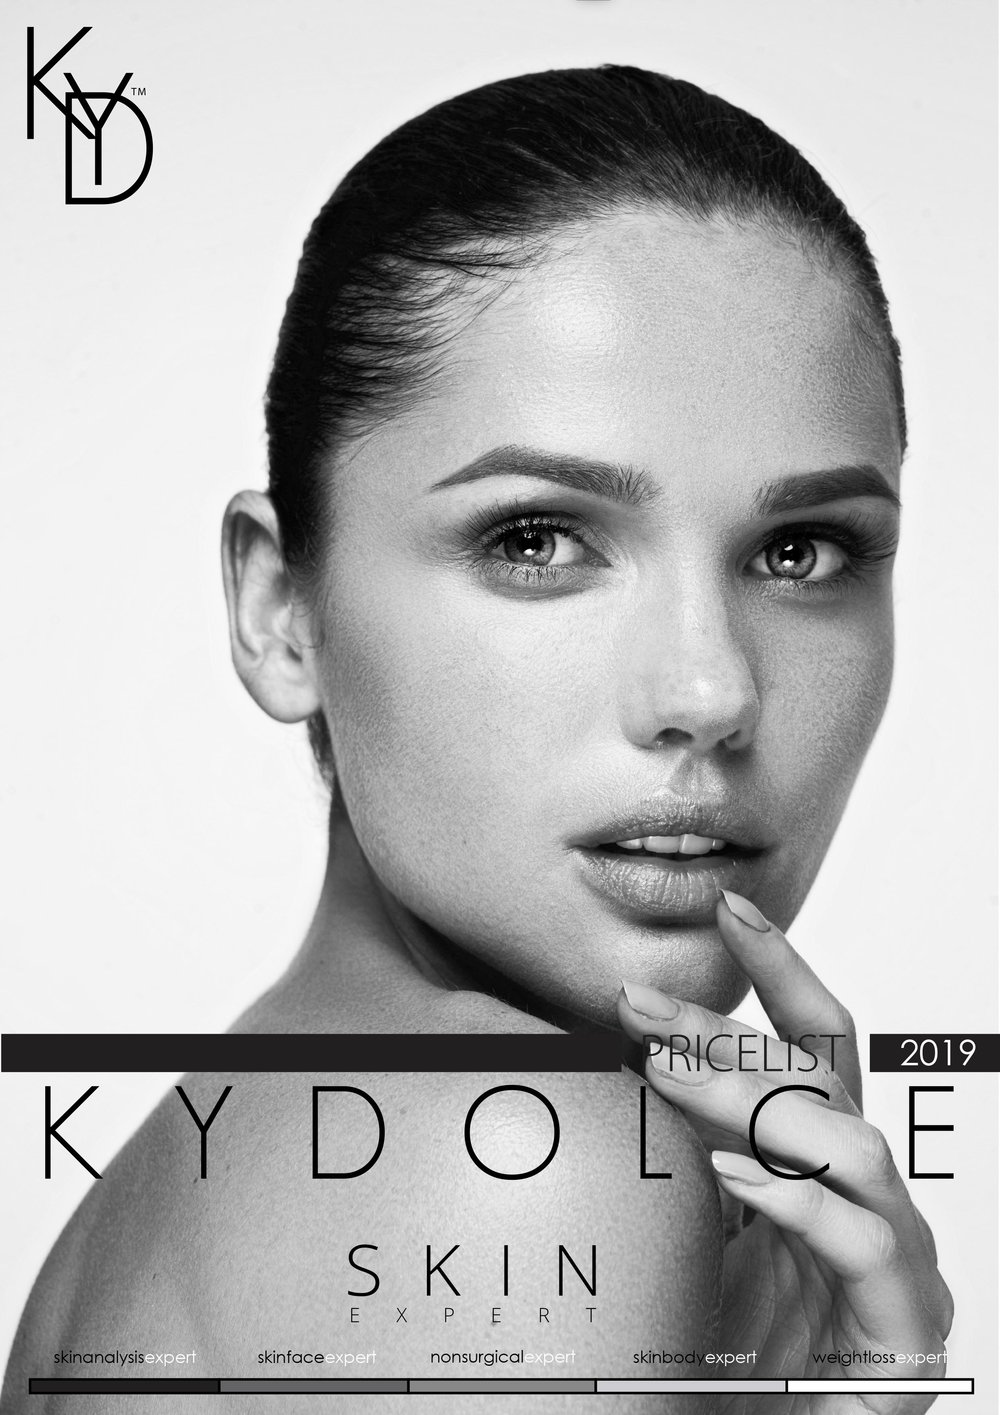 KYDOLCE Skin Clinic Manchester United Kingdom